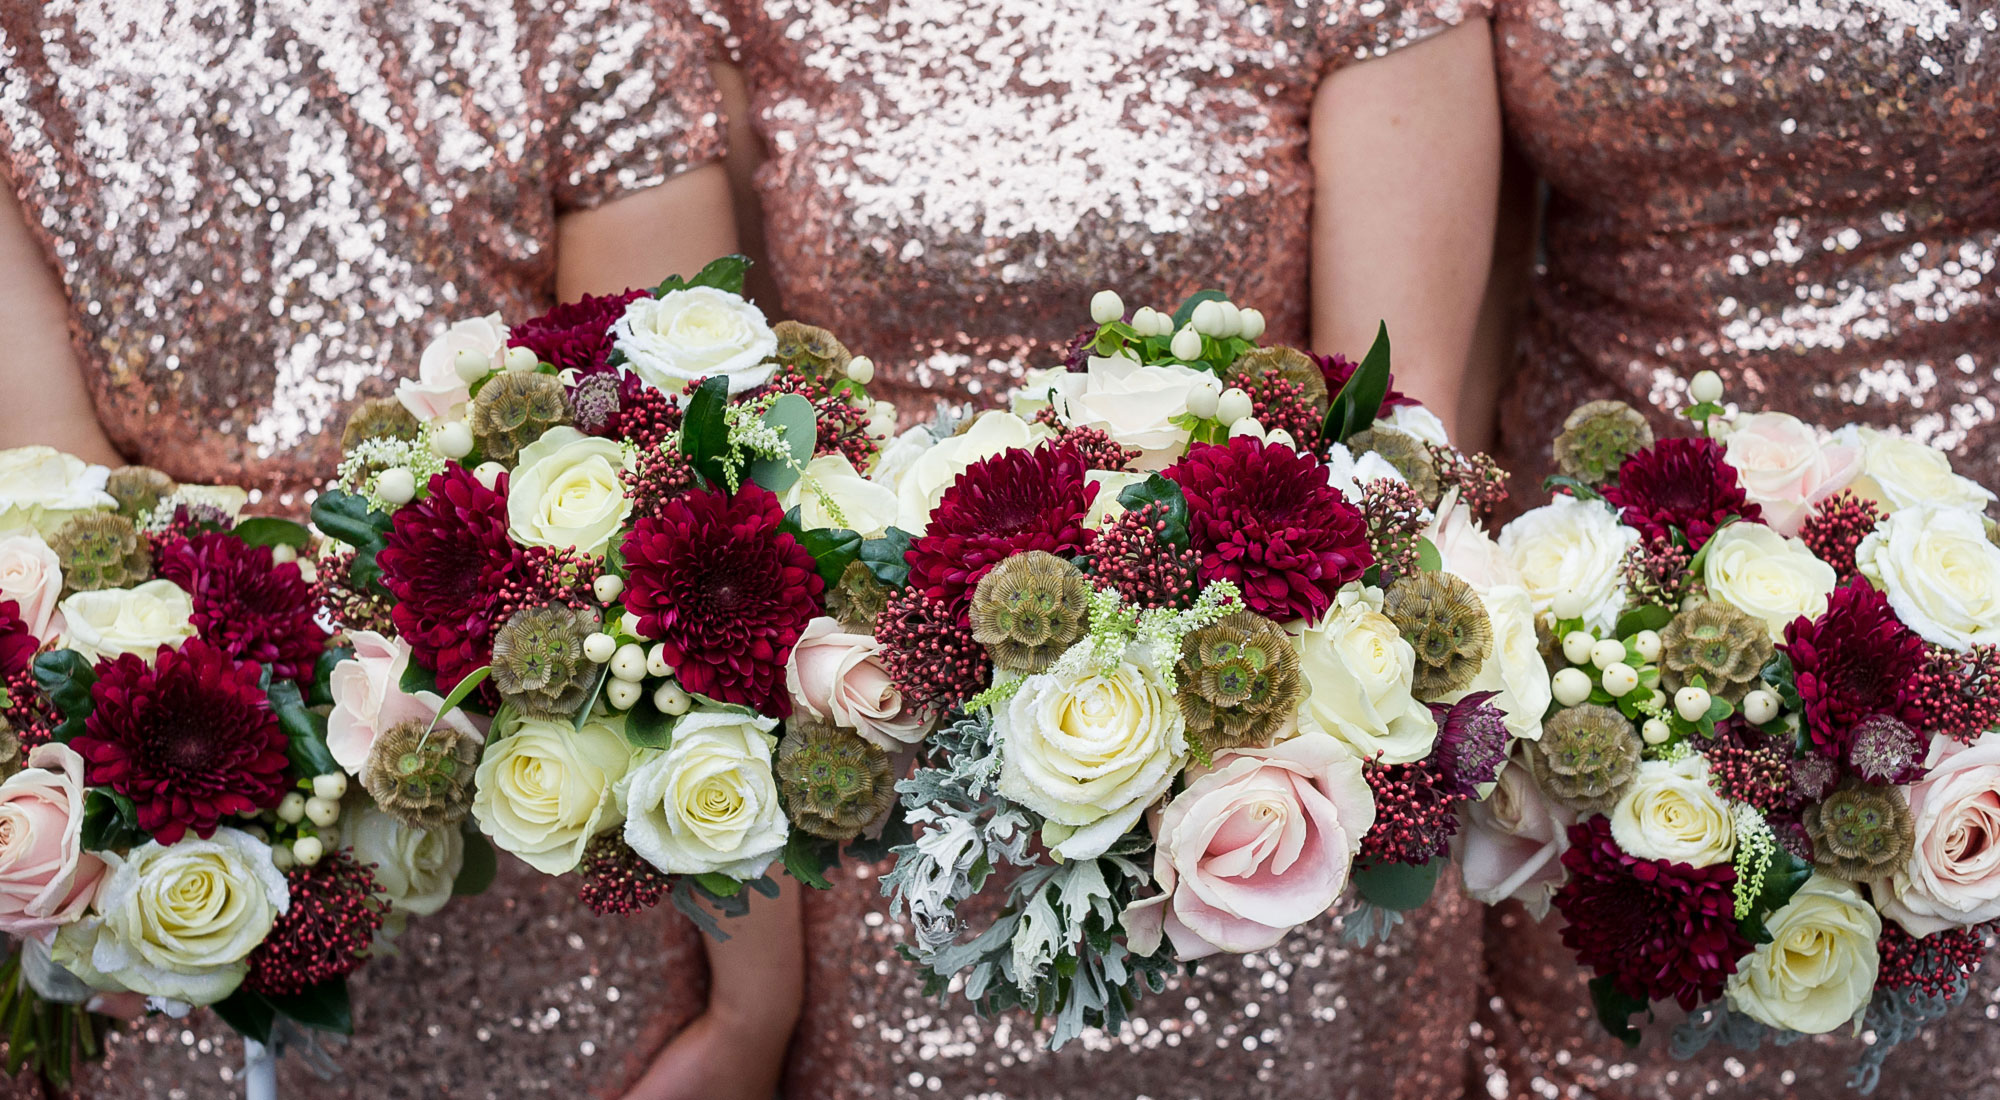 Bridemaids holding wedding bouquets